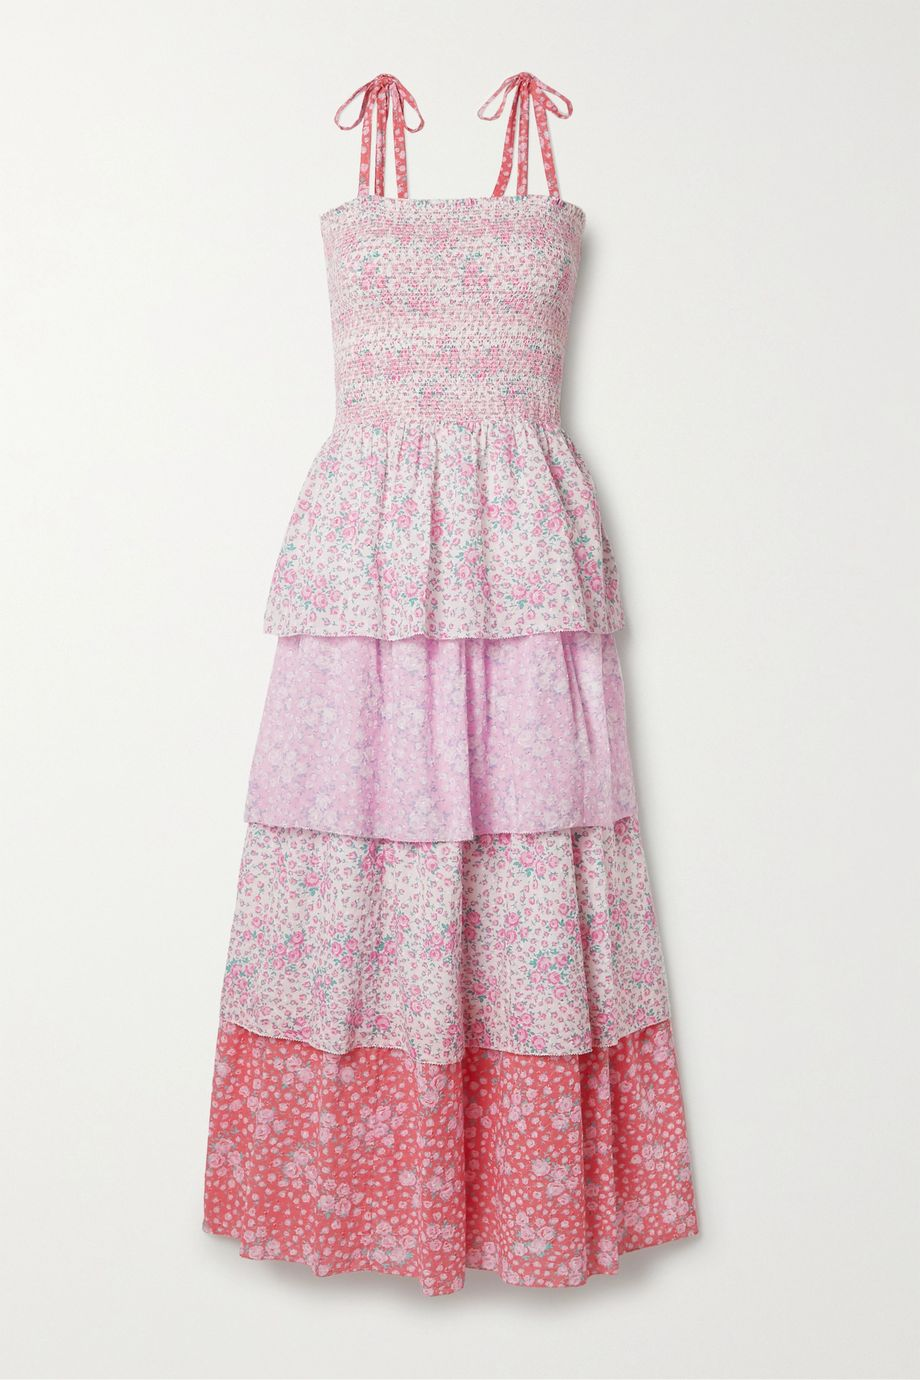 LoveShackFancy Caressa shirred tiered floral-print Swiss-dot cotton maxi dress